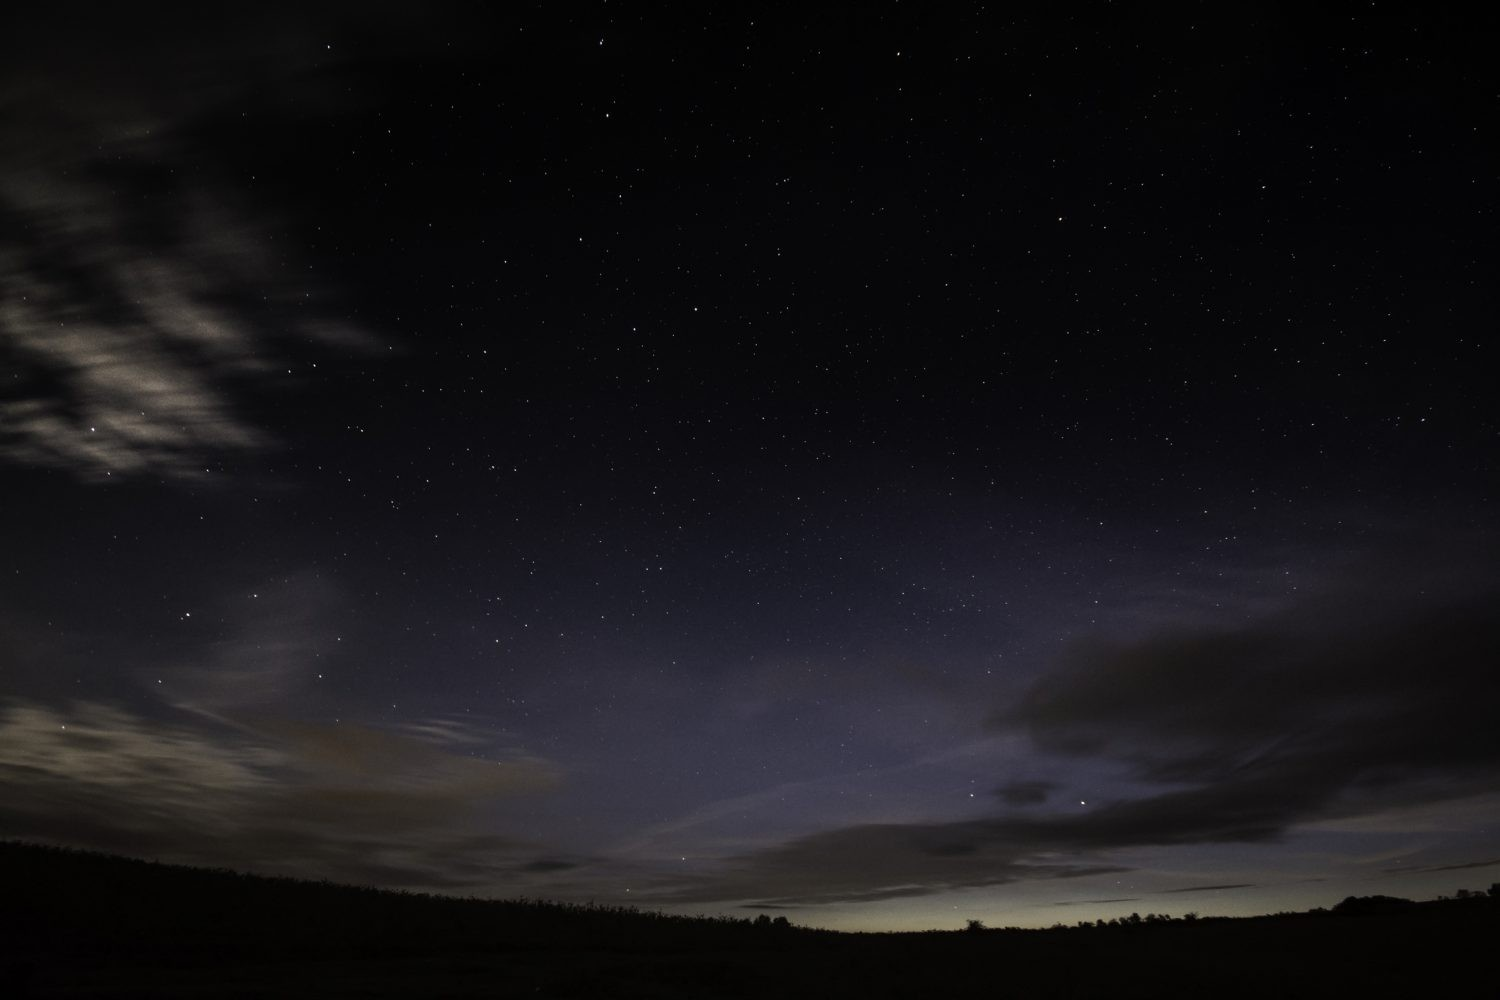 A view of the night sky over the Brecon Beacons Visitor Centre in South Wales. Credit: Edward Bentley/Getty Images